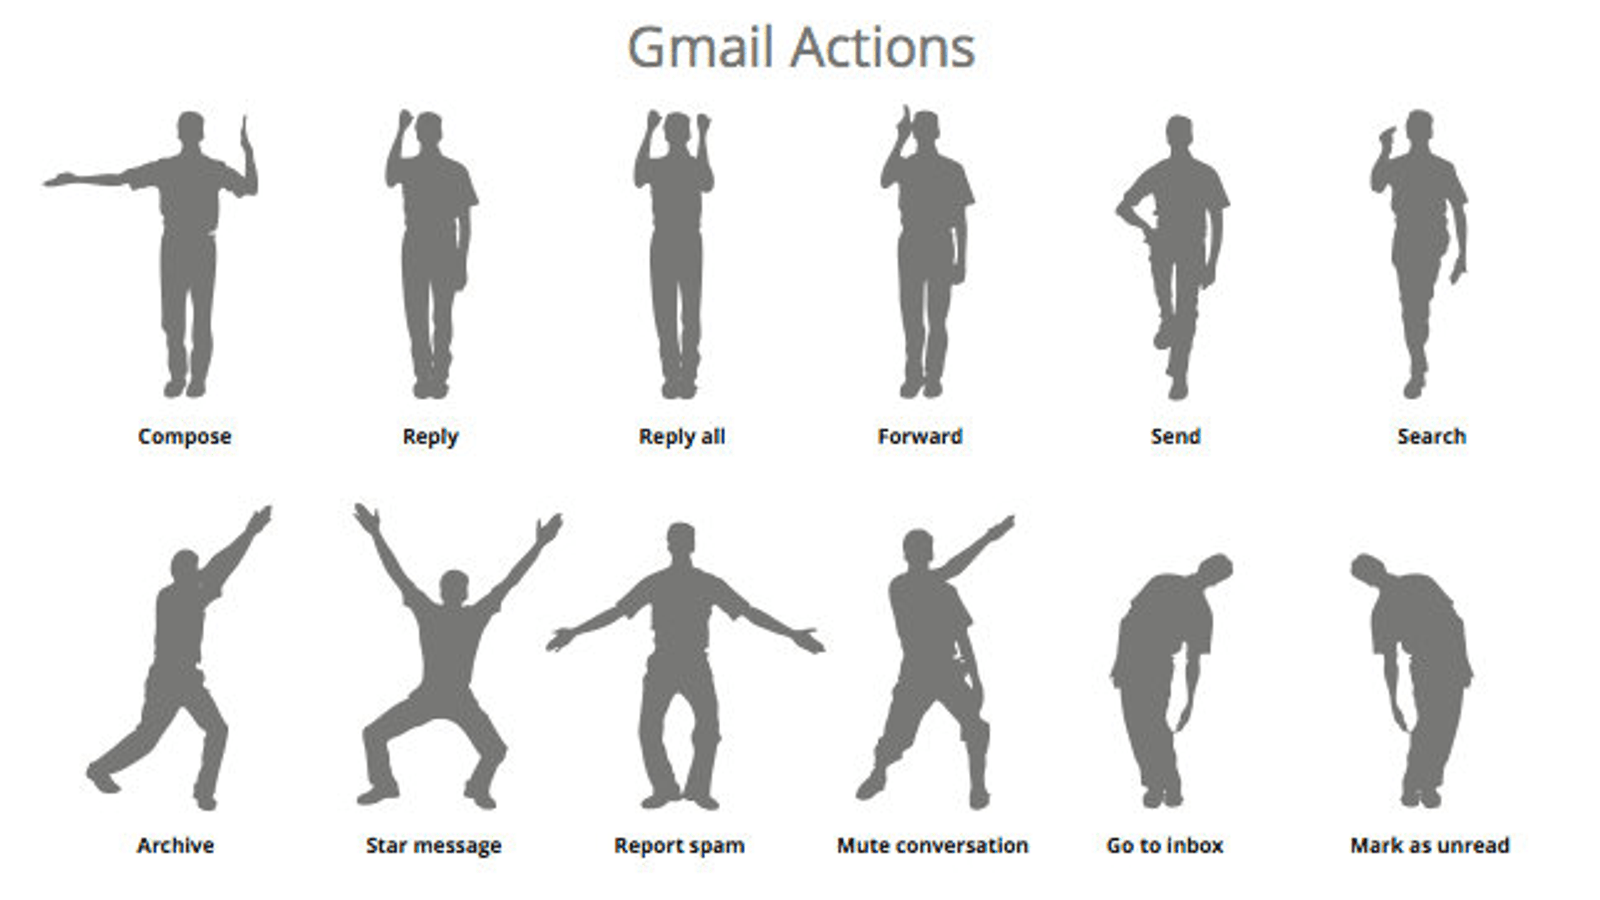 The Gmail Version Of Kinect Is S April Fool S Joke